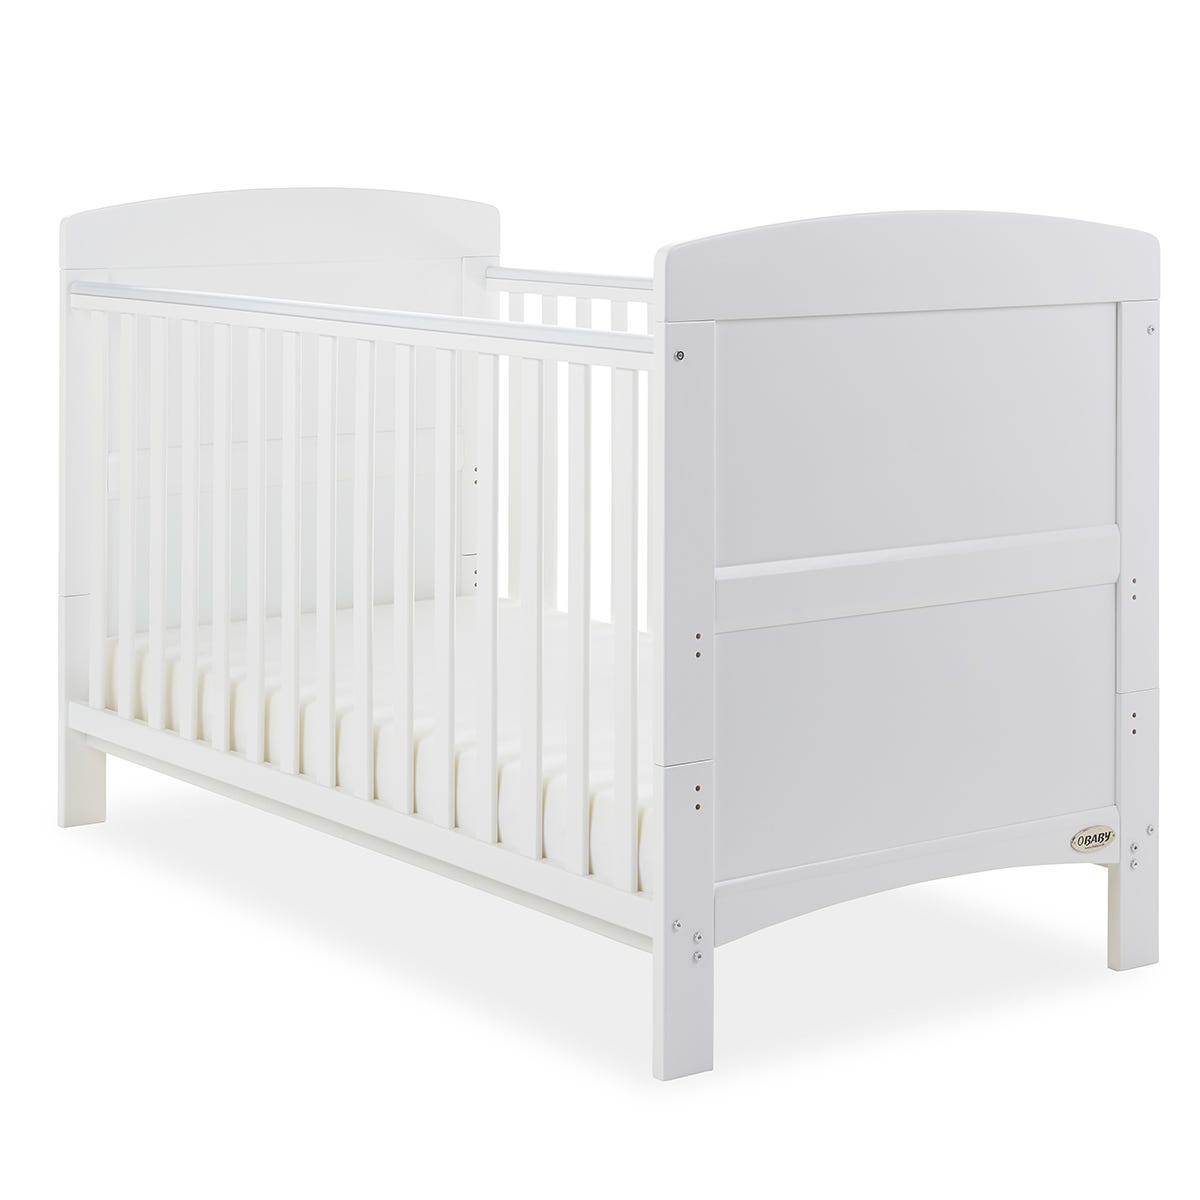 Obaby Grace Baby Cot Bed - White